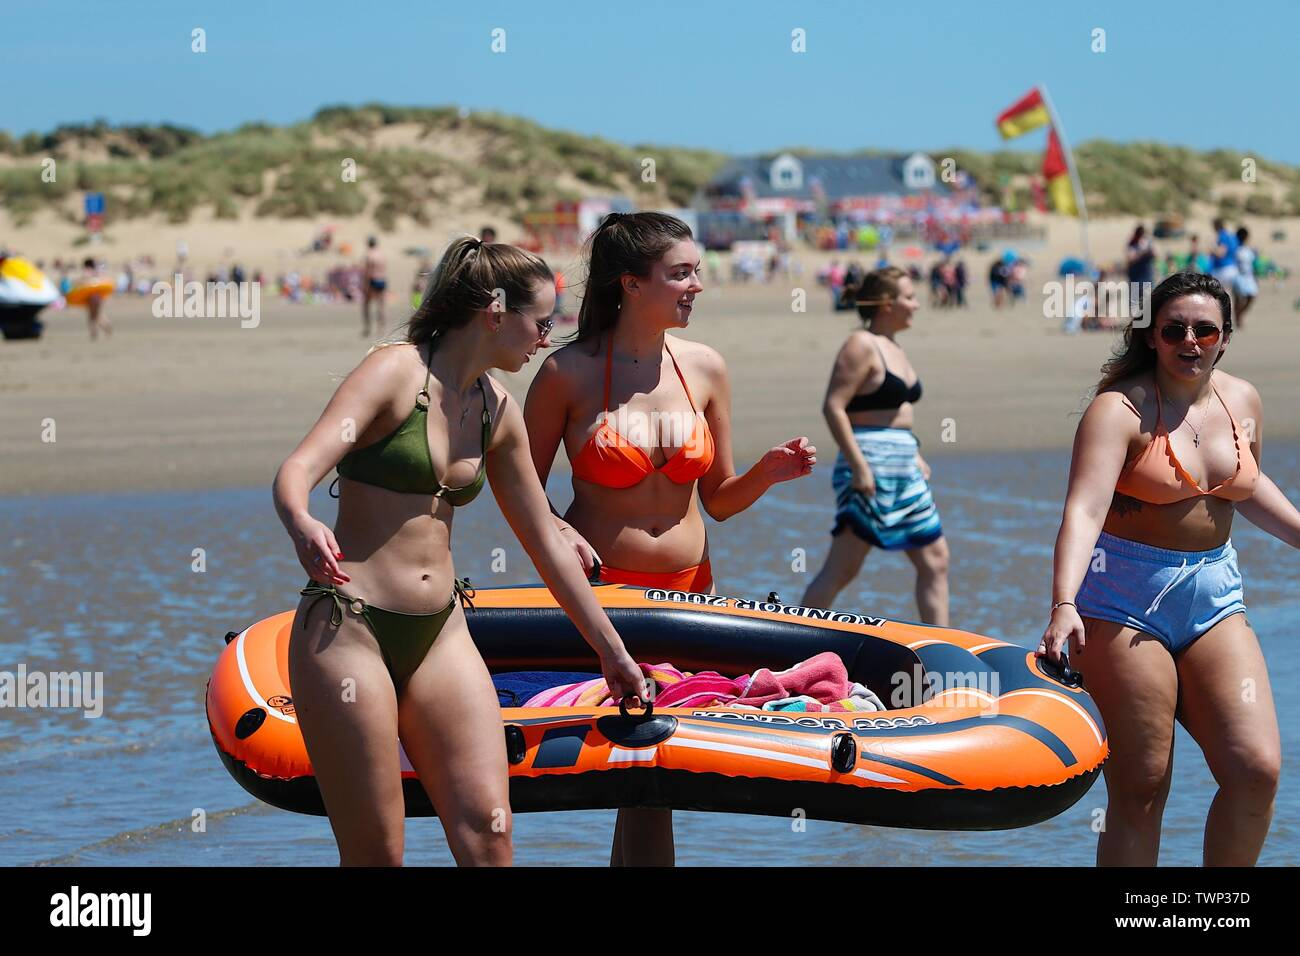 Camber, East Sussex, UK. 22nd June, 2019. A beautiful sunny start to the weekend in Camber, East Sussex as people arrive to the Camber Sands beach to enjoy the warm weather. Credit: Paul Lawrenson 2019, Photo Credit: Paul Lawrenson/Alamy Live News Stock Photo